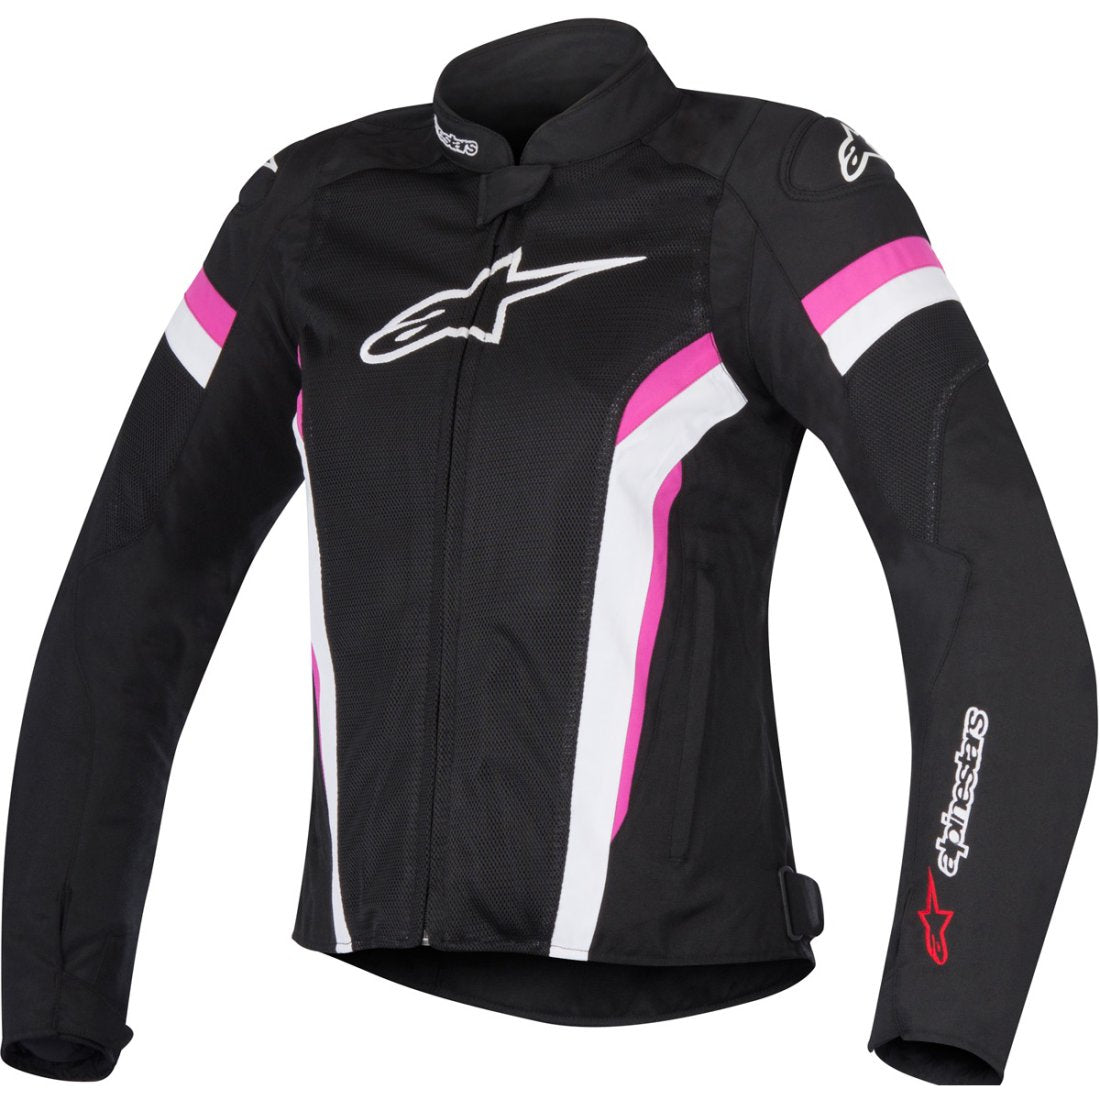 ALPINESTARS WOMENS STELLA T-GP PLUS R V2 SPORT RIDING JACKET BLACK/WHITE/FUCHSIA